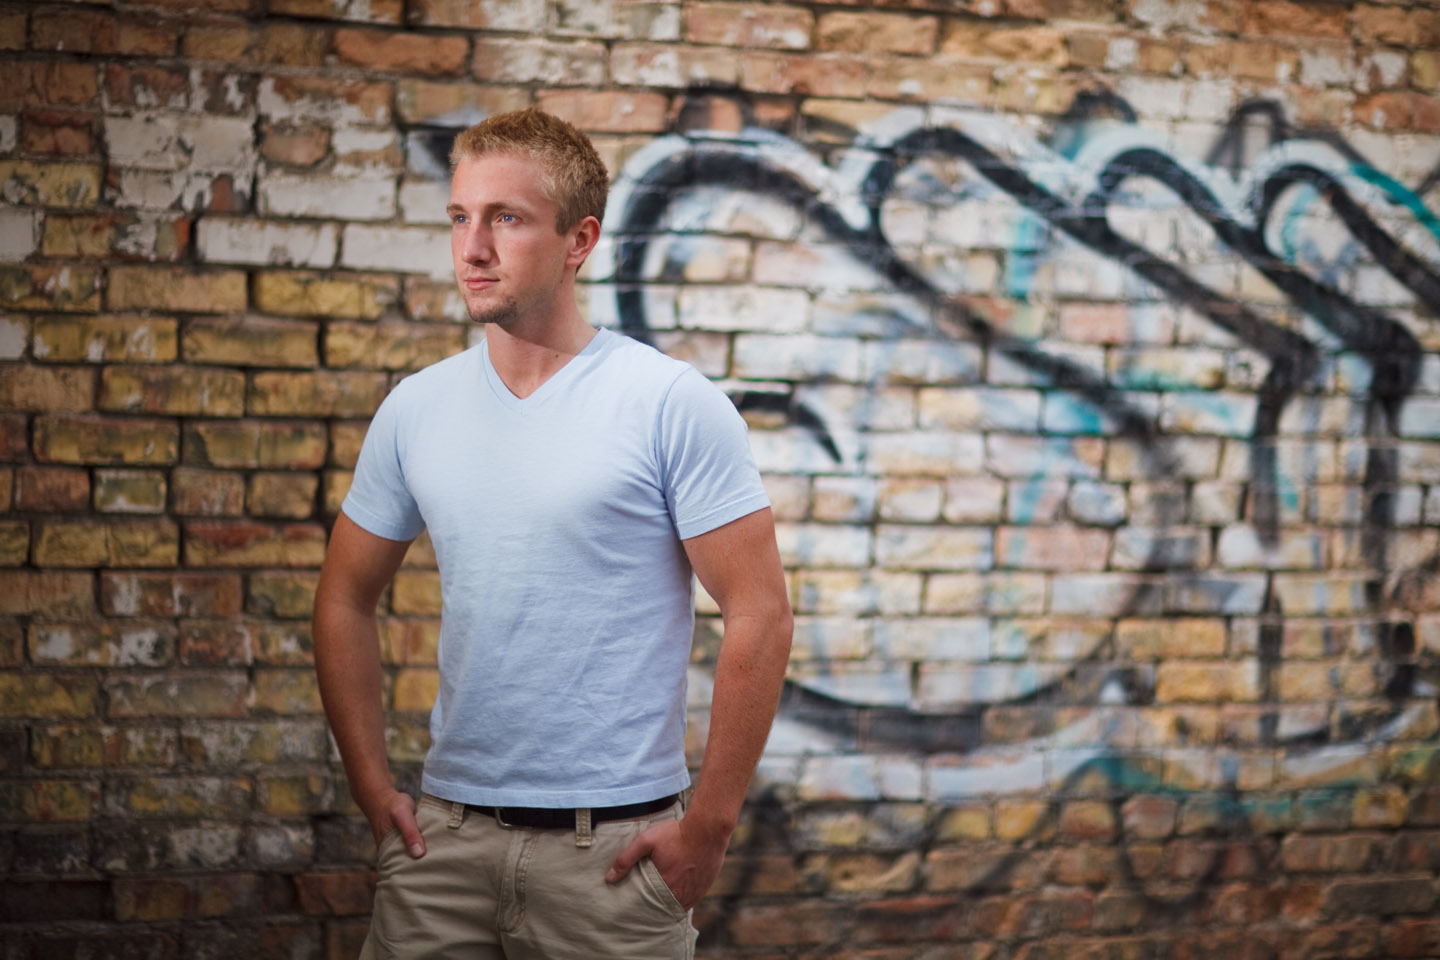 It's fun to find an alleyway for portraits especially with graffiti